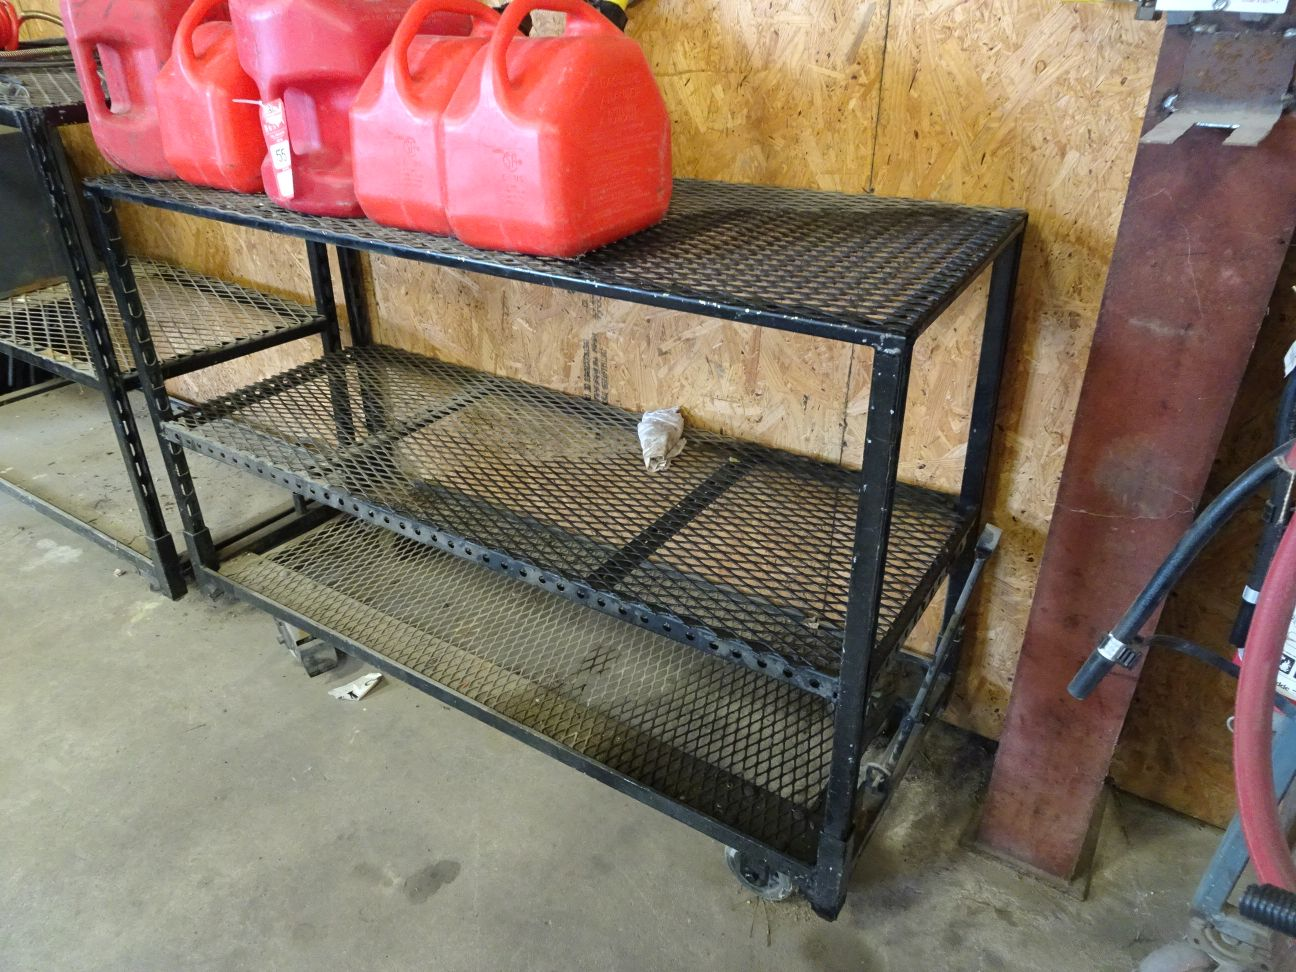 Lot 55 - ASSORTED ITEMS, INCLUDES (5) GAS CANS, VARIOUS BELTS, PARTS ORGANIZERS, AND (2) METAL RACKS